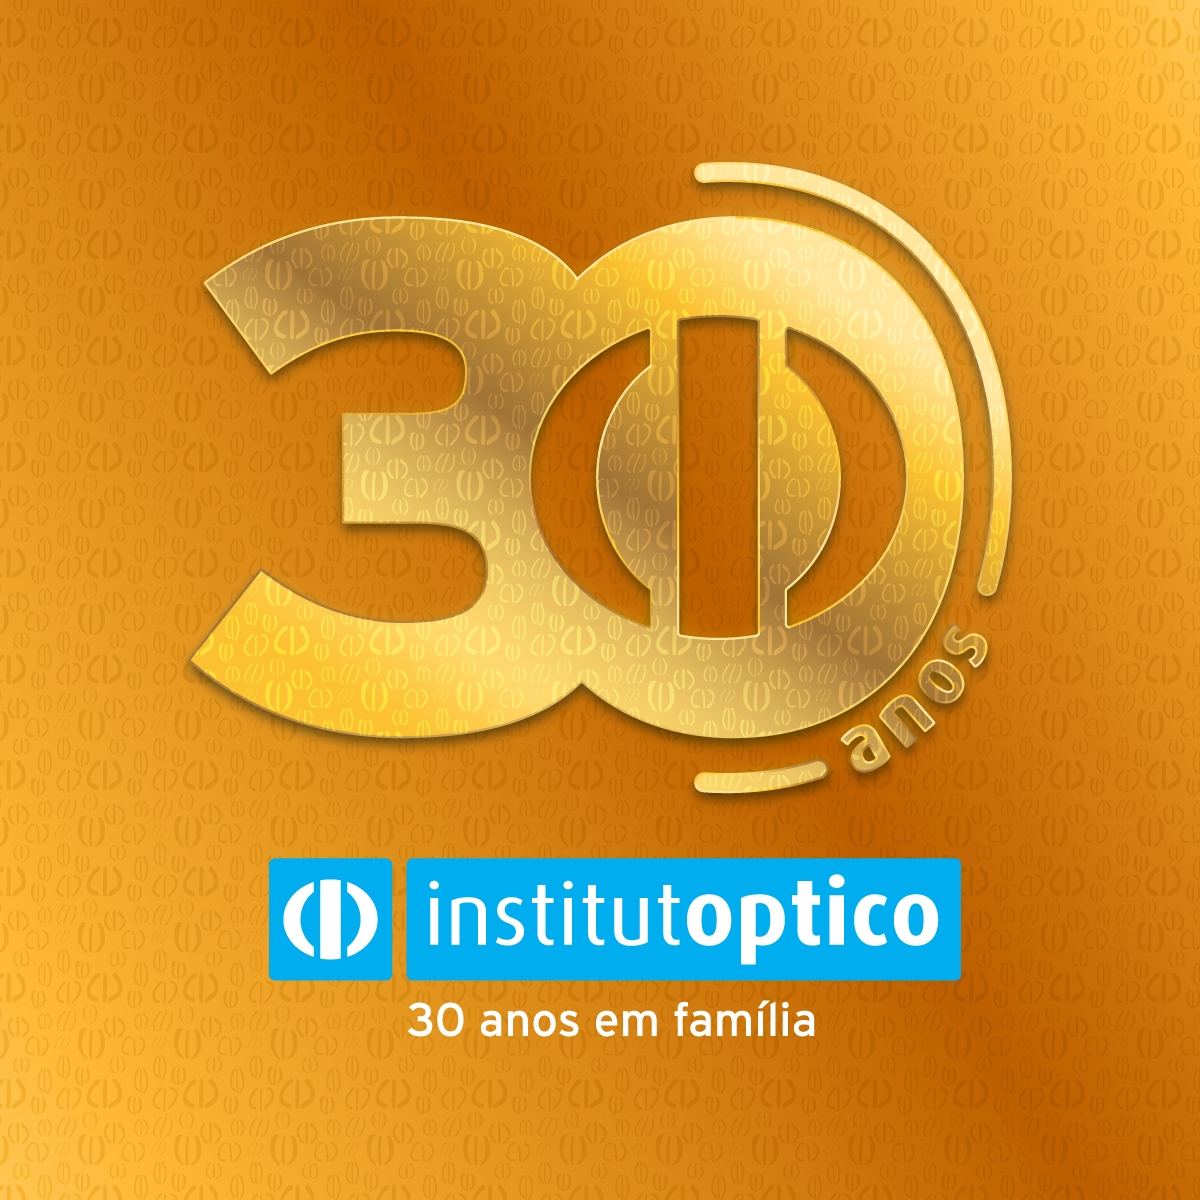 institutoptico 30 anos (2)